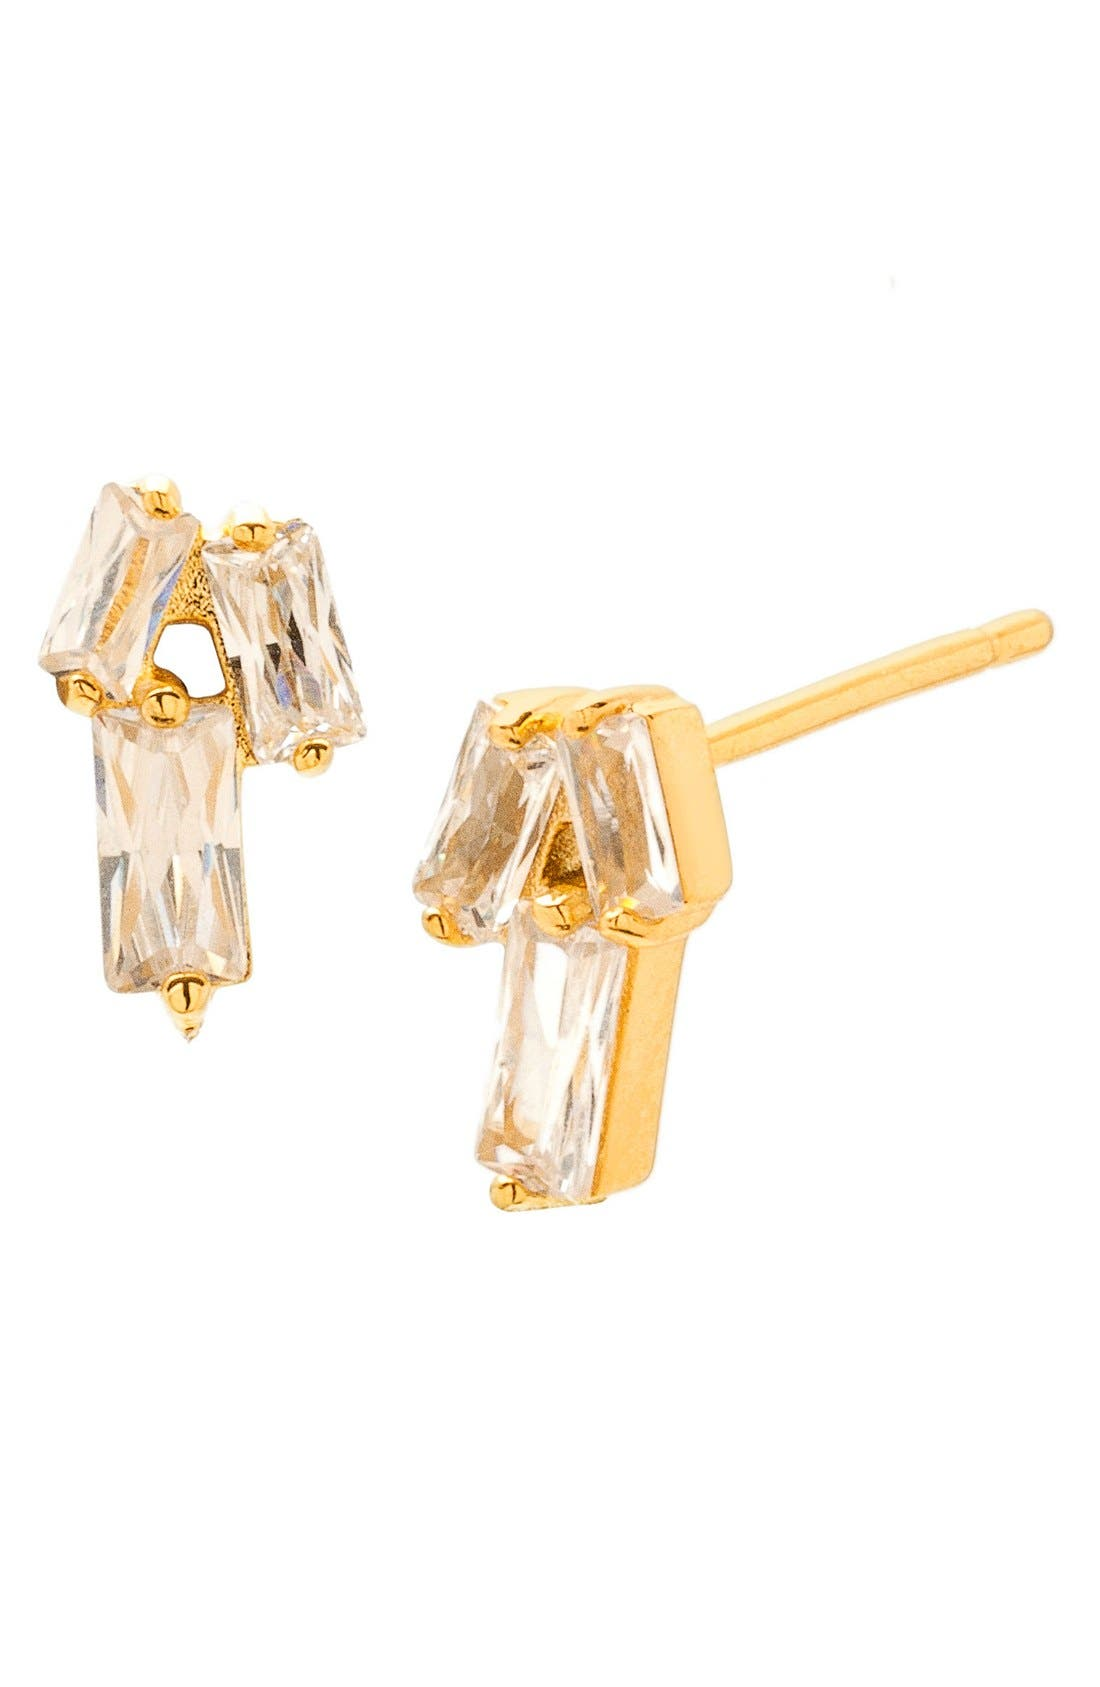 GORJANA Amara Cubic Zirconia Stud Earrings